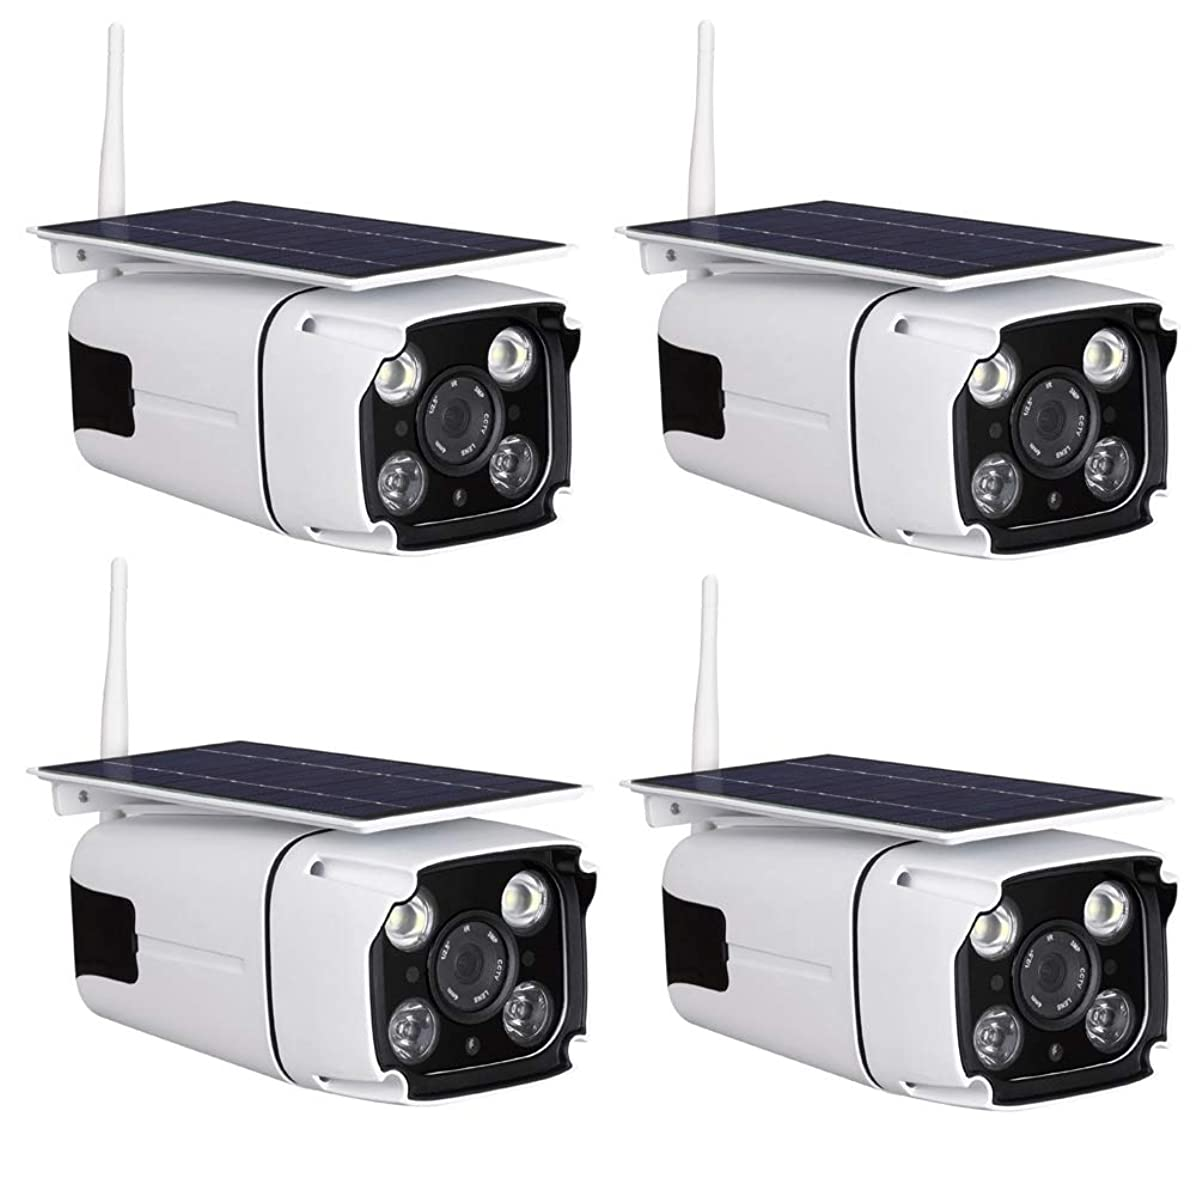 OMZBM Upgrade Multifunction Wireless WiFi IP Solar Power Camera 1080P HD Waterproof with Induction LED Light,Two-Way Voice Intercom,IR Night Vision,PIR Motion Detection,with 64G Memory Card,Four